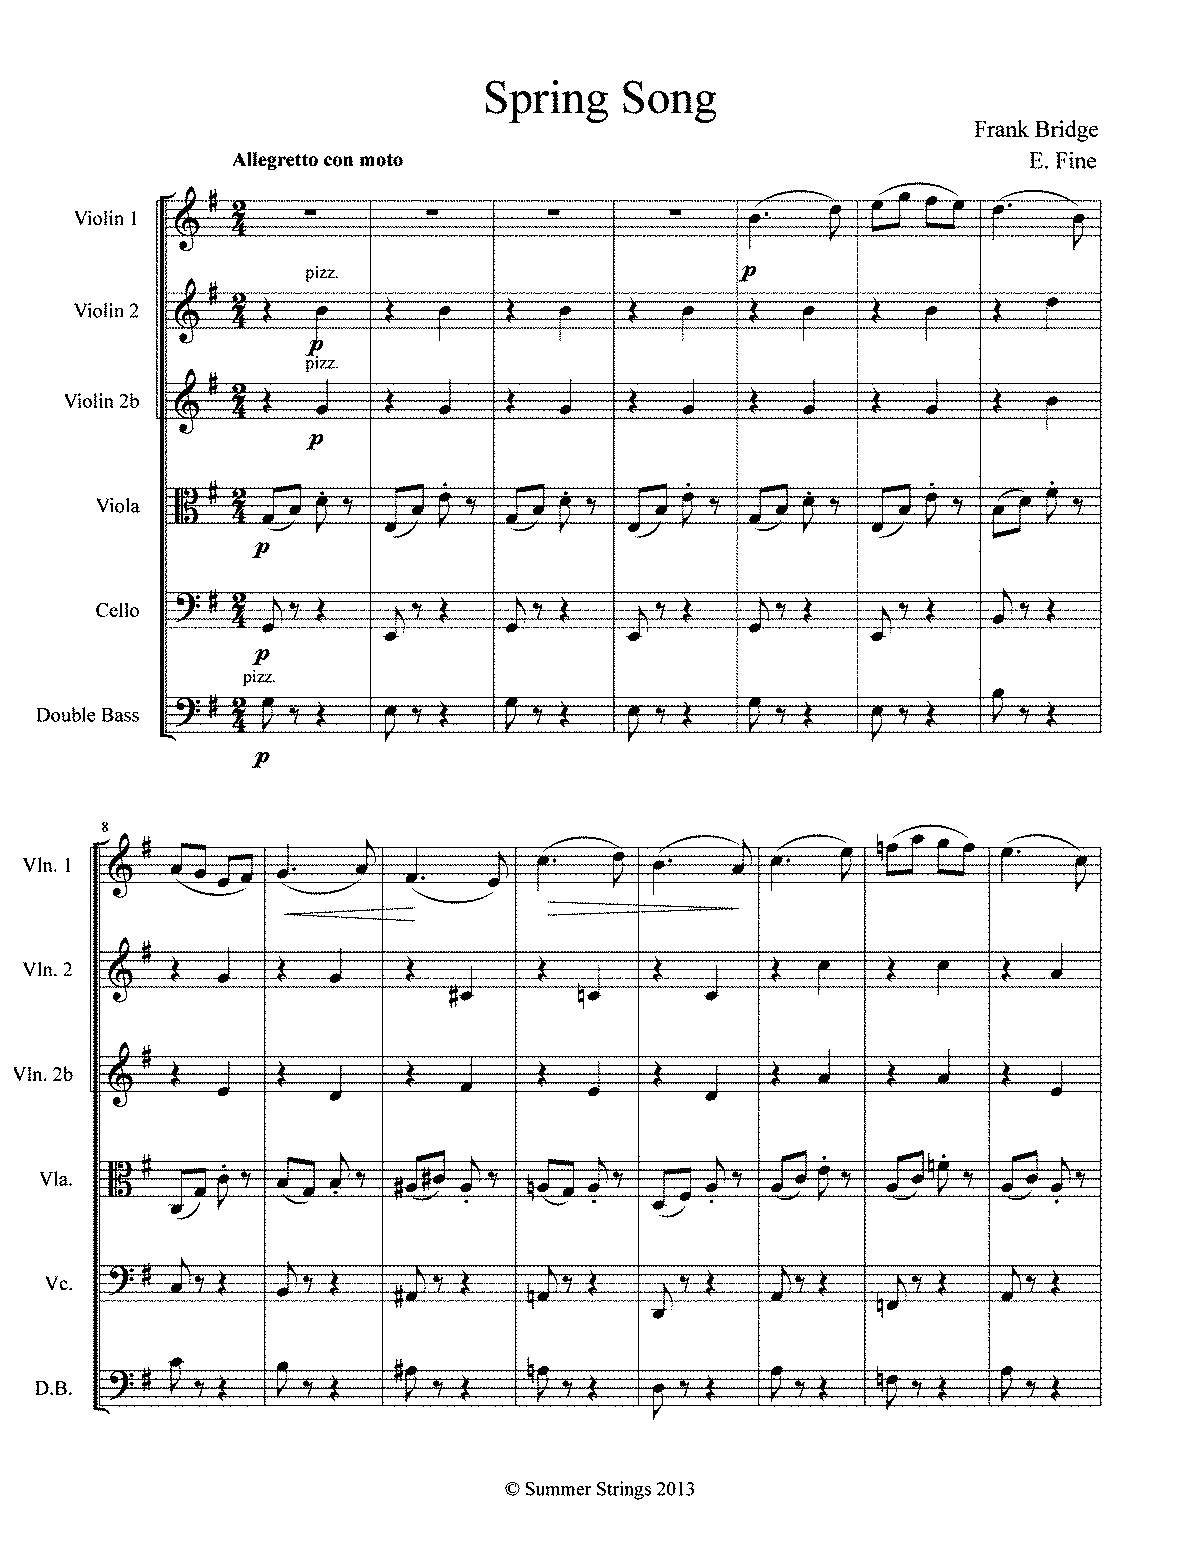 PMLP70802-Bridge Spring Song Score and Parts.pdf